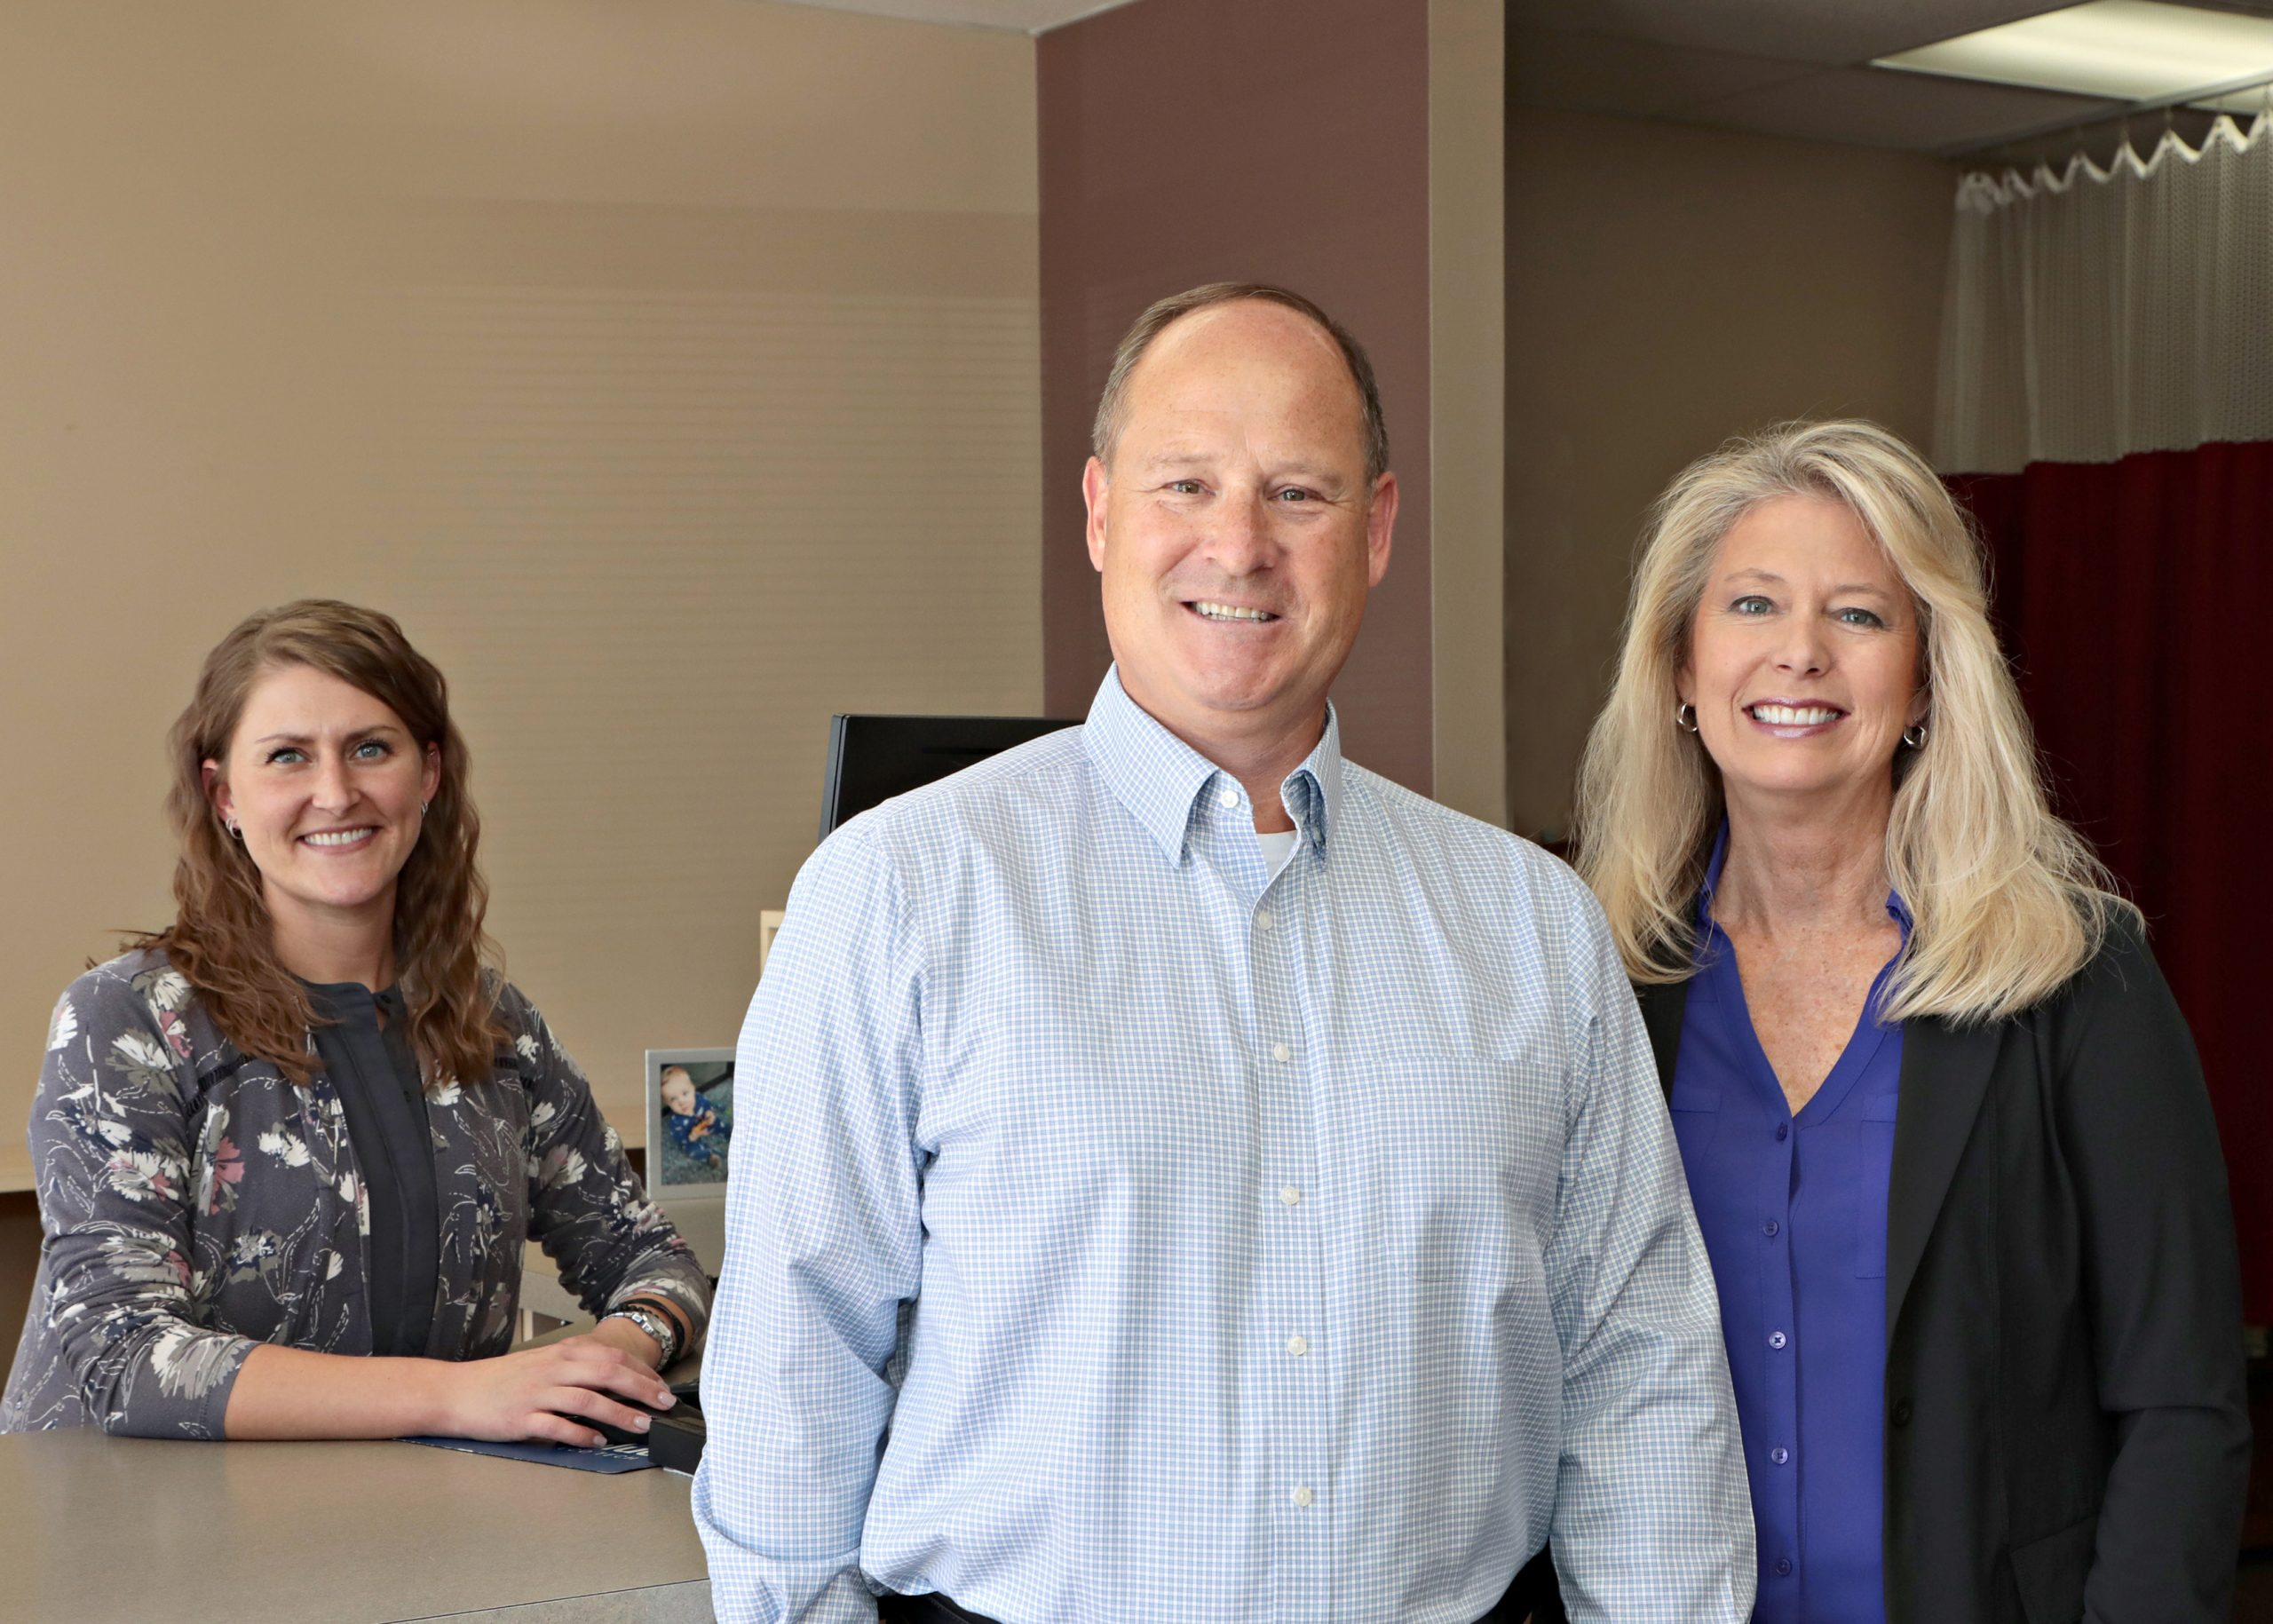 The Langel Chiropractic Team providing chiropractic care since 1994.